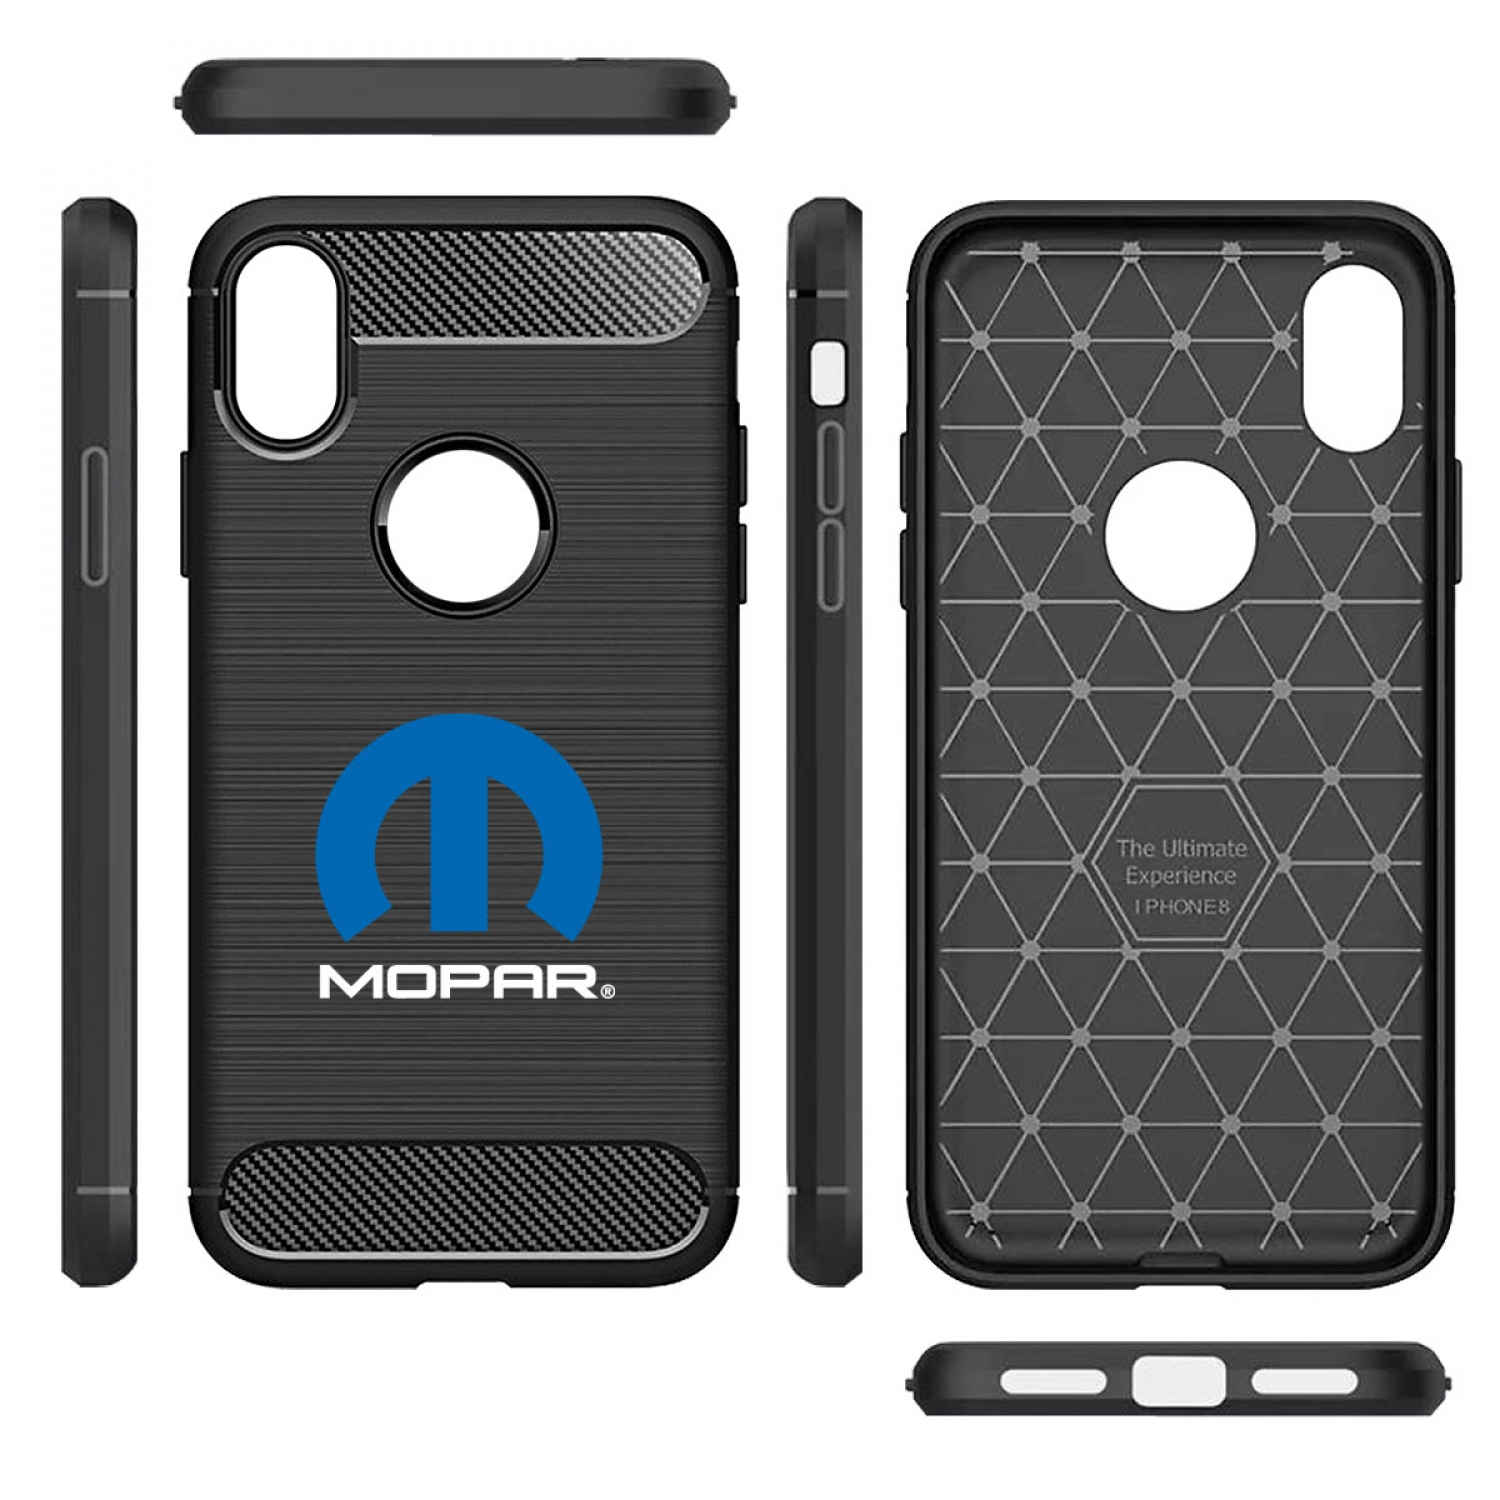 MOPAR Logo iPhone X TPU Shockproof Black Carbon Fiber Textures Stripes Cell Phone Case